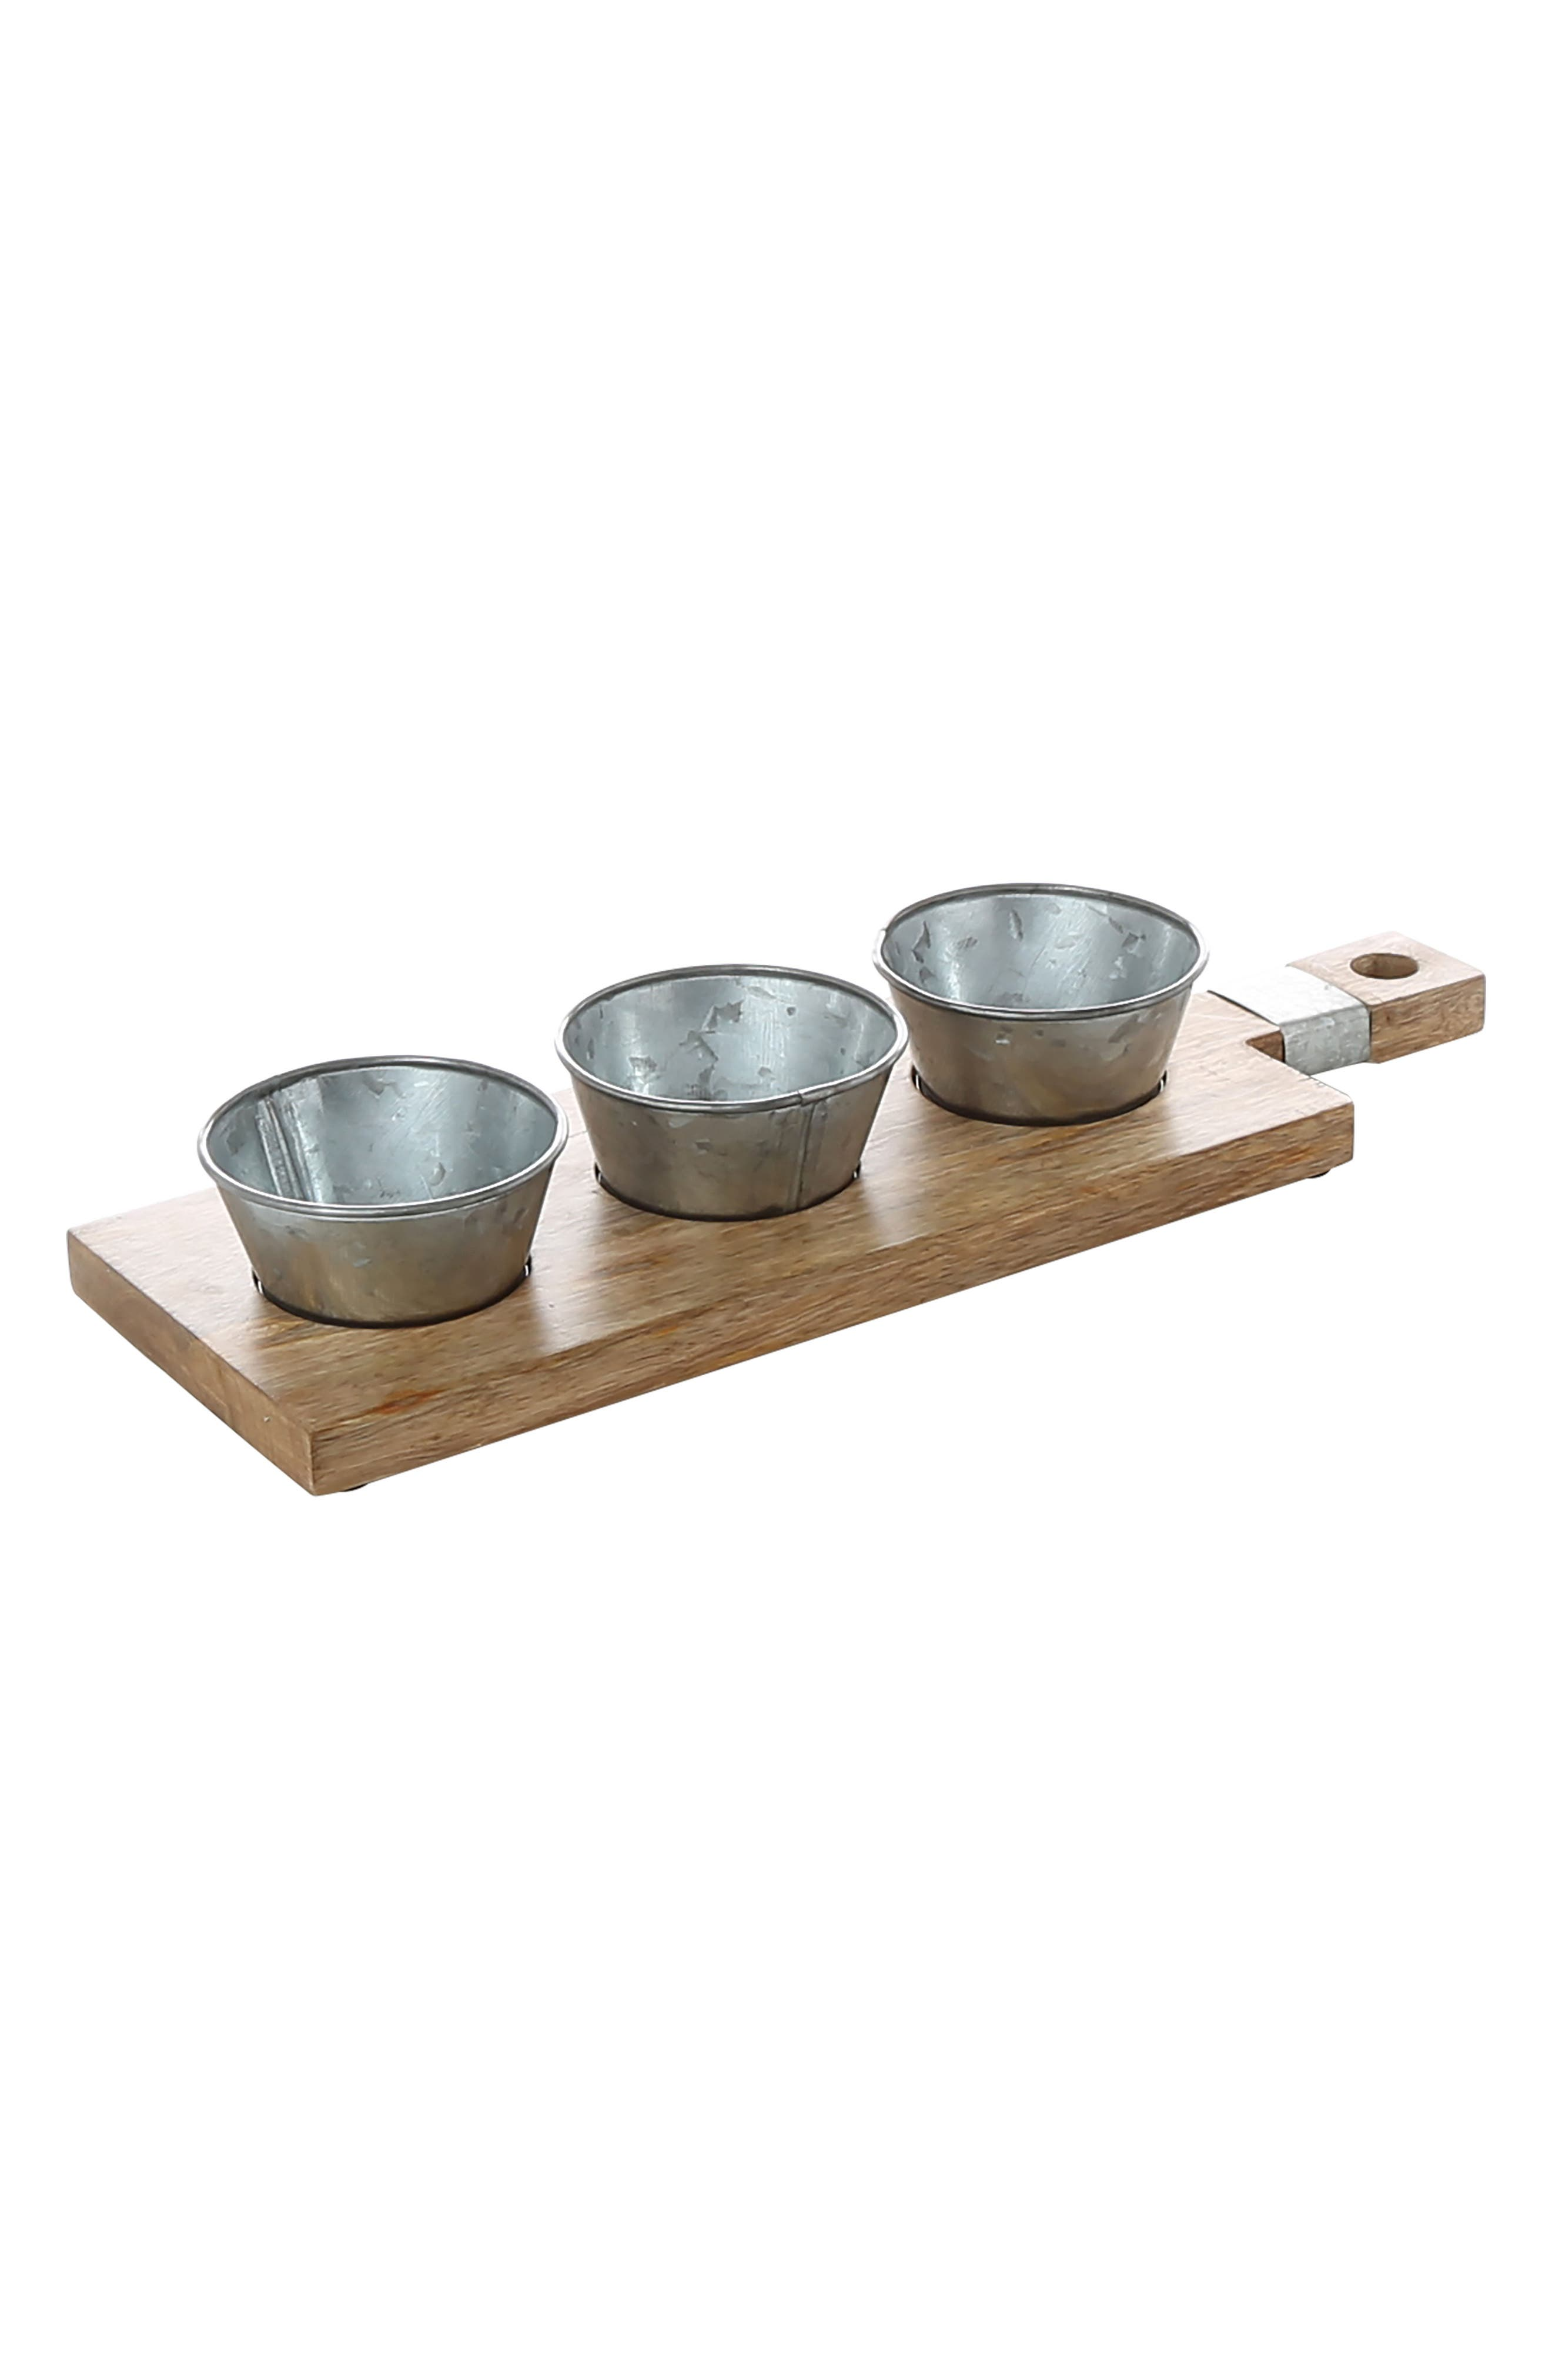 Main Image - Thirstystone Condiment Tray with Galvanized Bowls